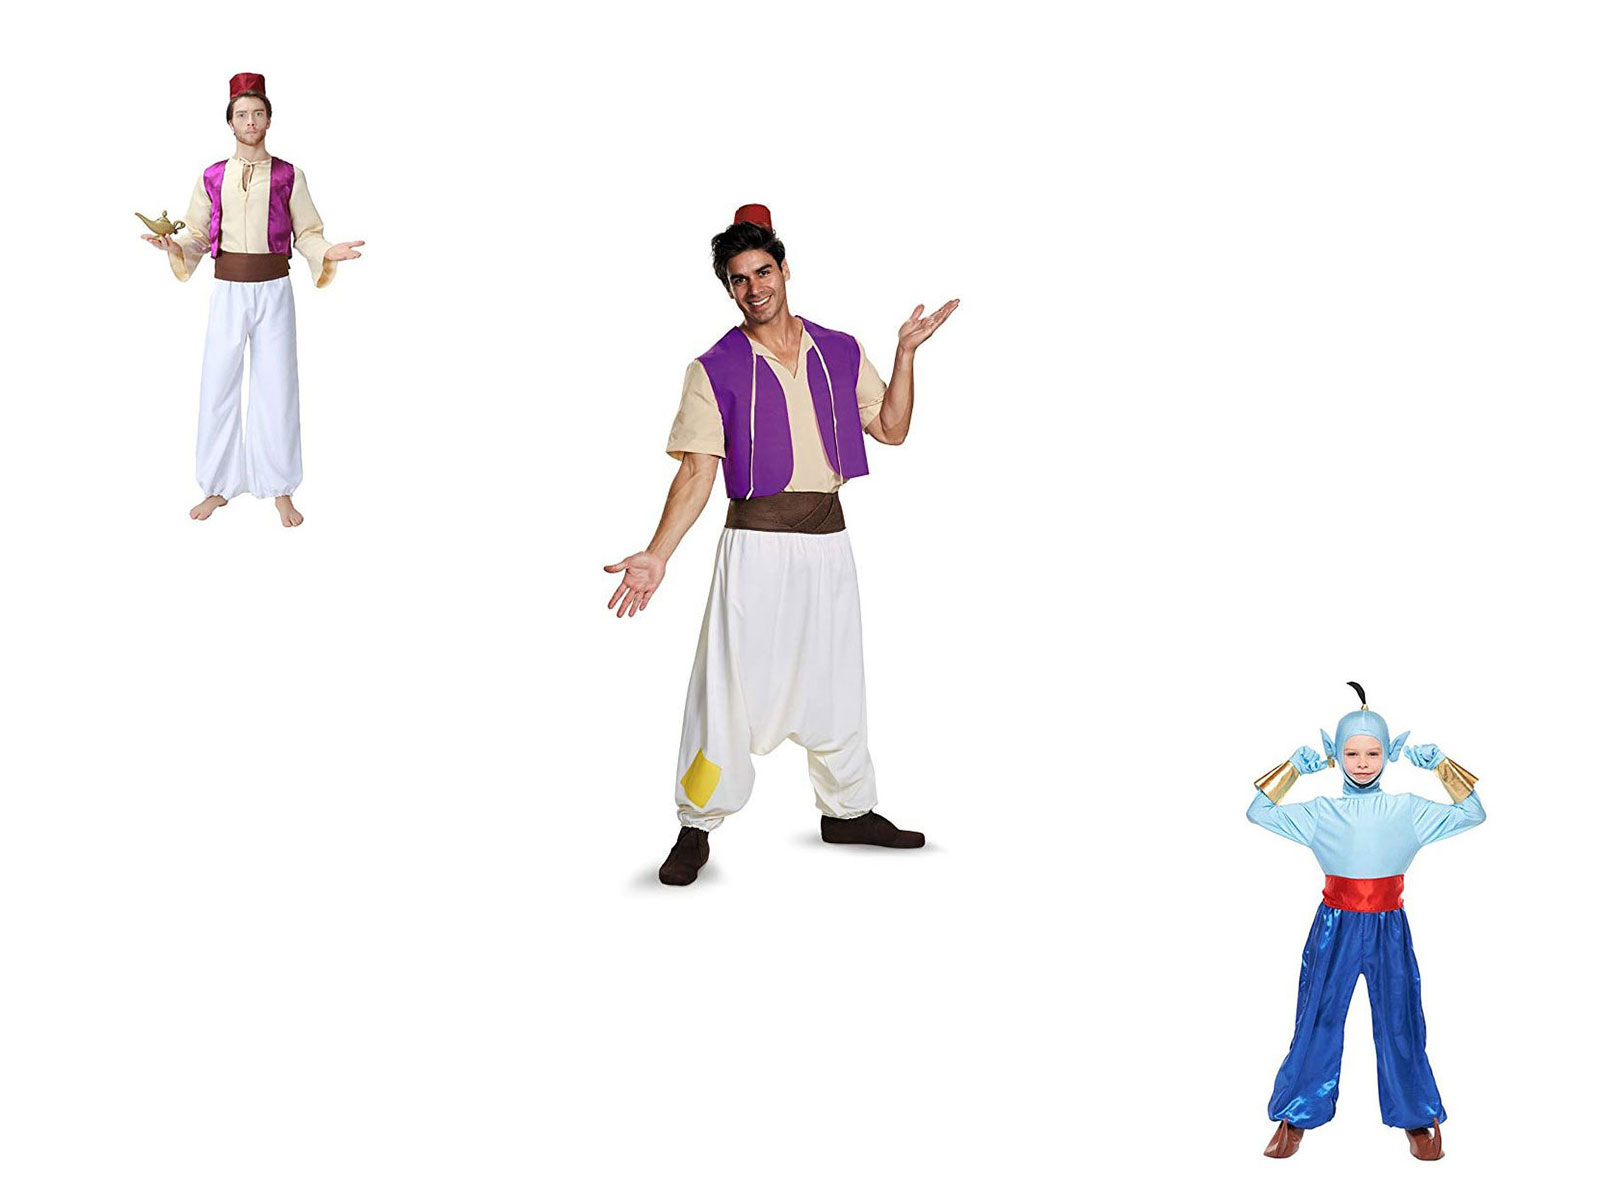 Aladdin-Full-Movie-Costume-Ideas-For-Kids-Adults-2019-F